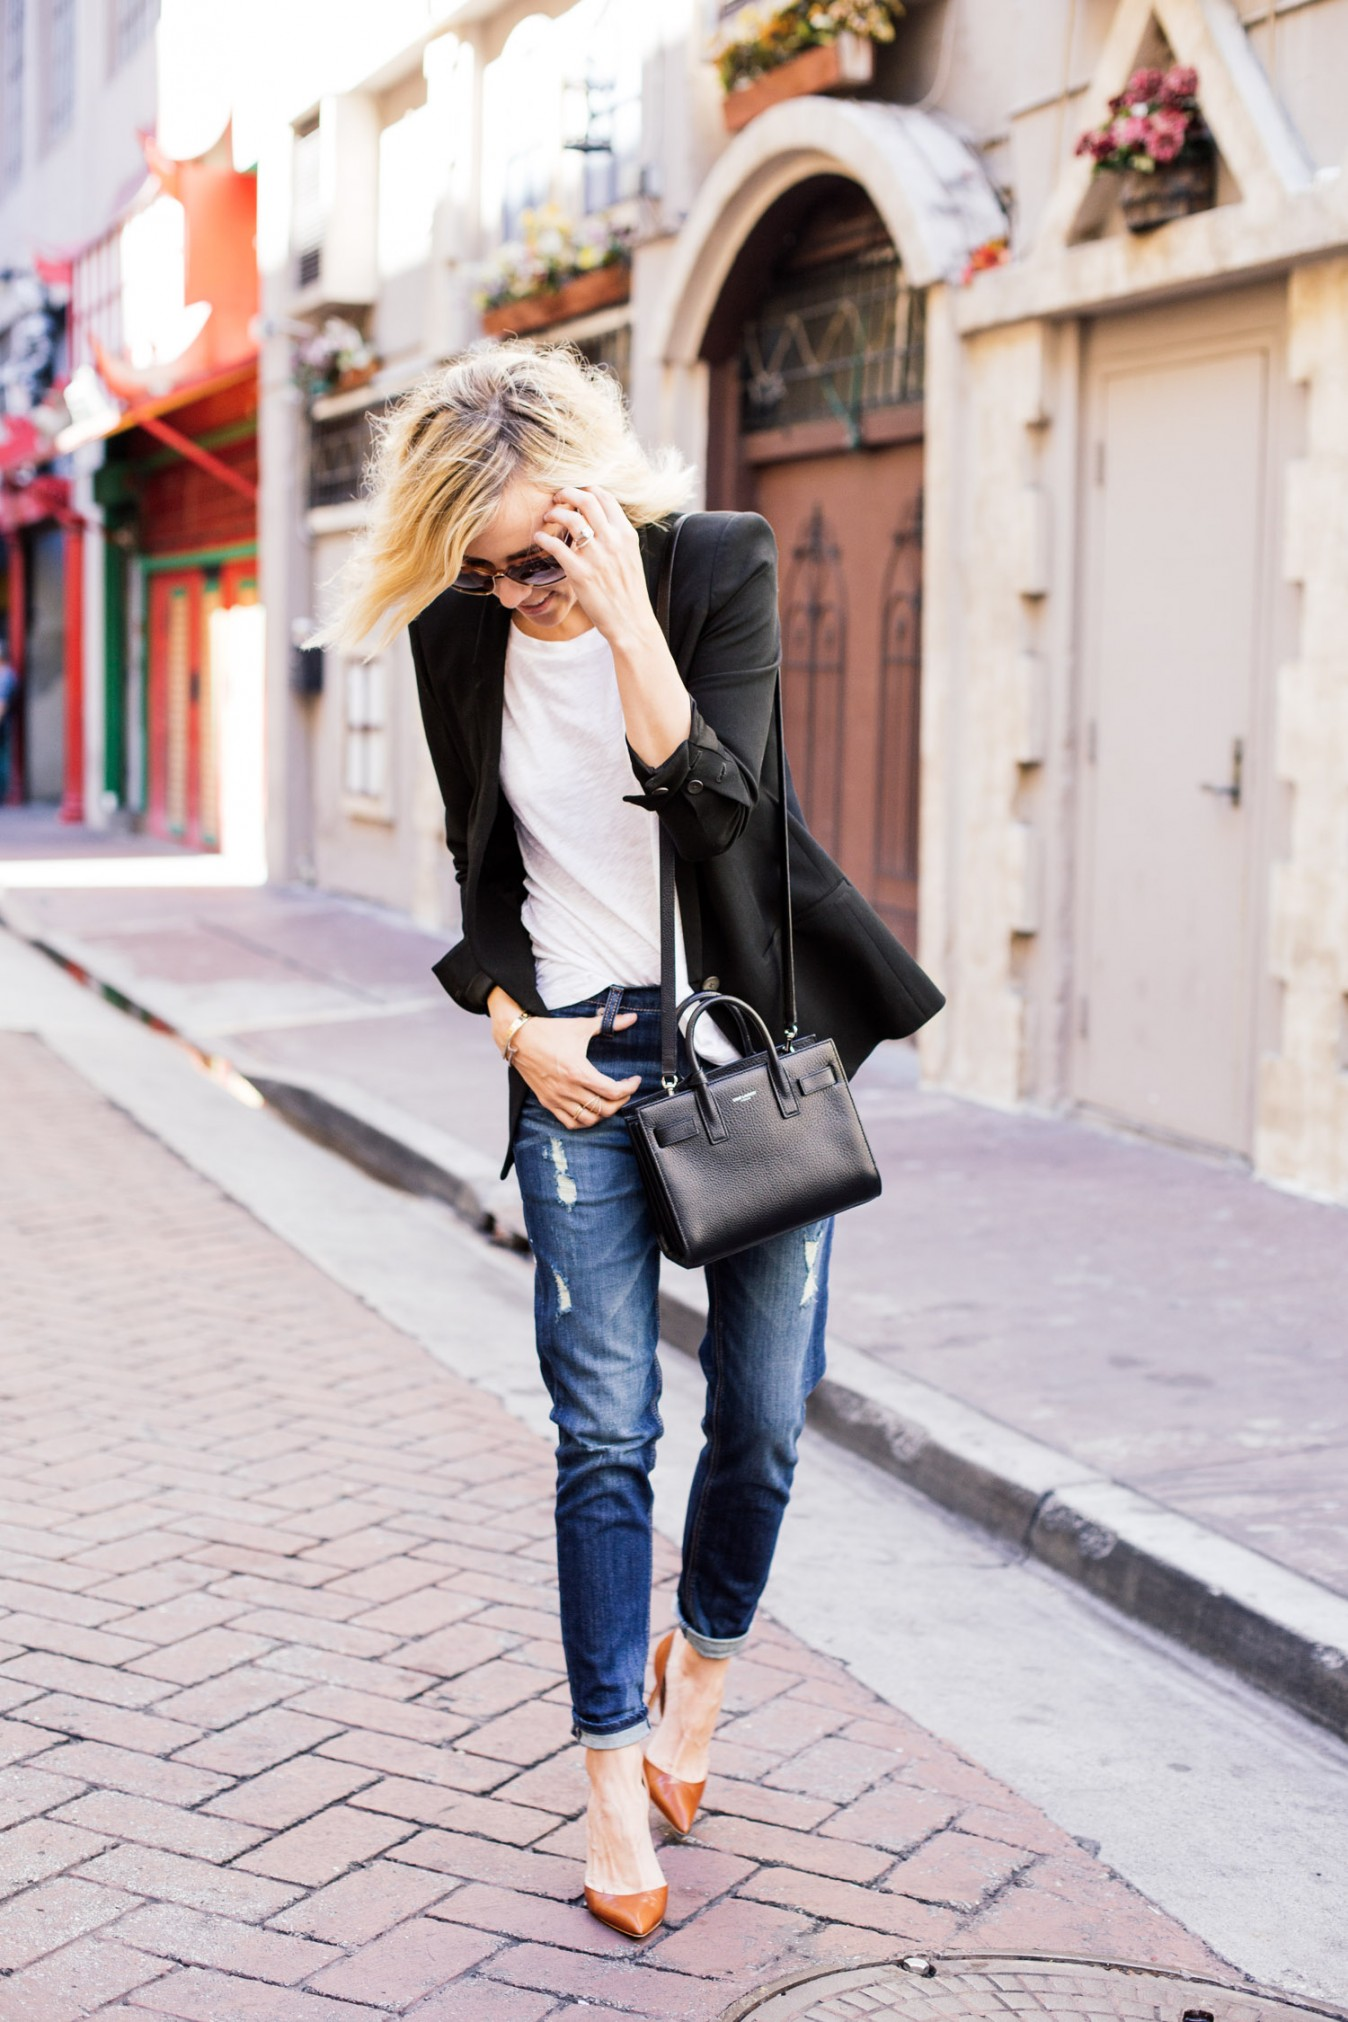 Jacey Duprie is wearing a white T-shirt and distressed girlfriend jeans from Express, blazer from Helmut Lang, and the shoes are from Manolo Blahnik